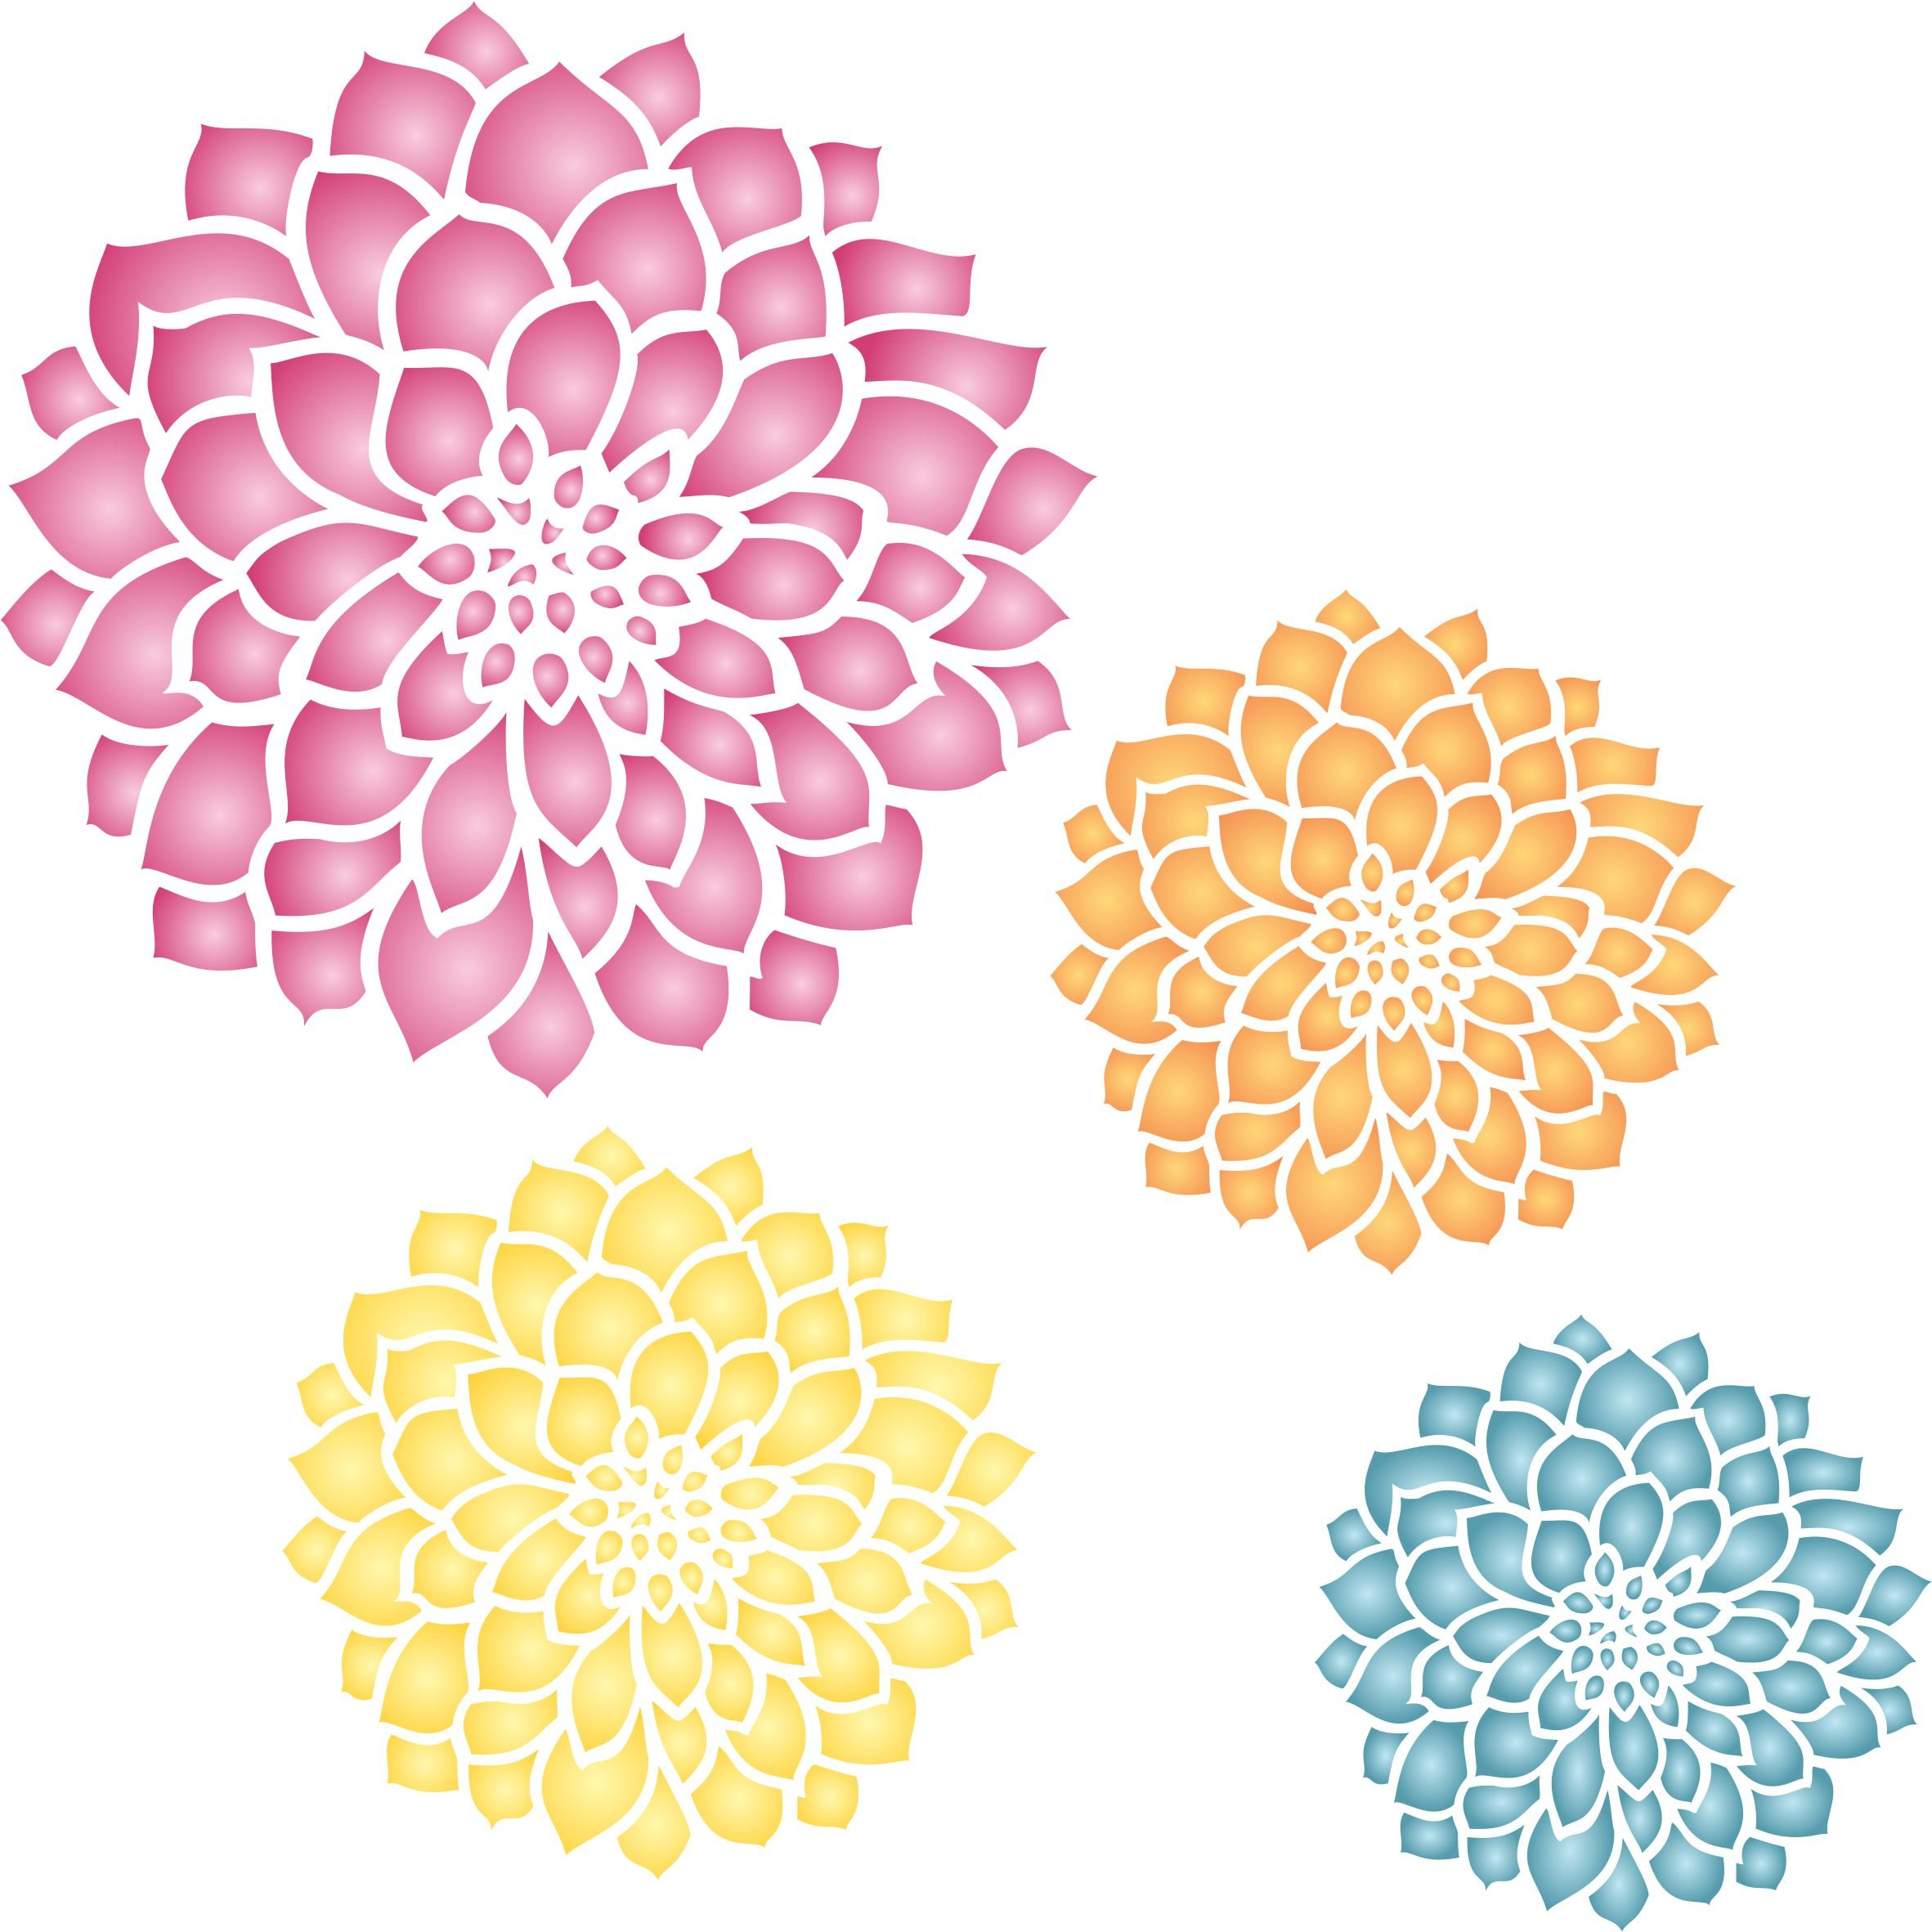 Zinnia Mural Stencil - (size 14'' x 14'') Reusable Wall Stencils for Painting - Best Quality Mural Wall Art Ideas - Use on Walls, Floors, Fabrics, Glass, Wood, and More...